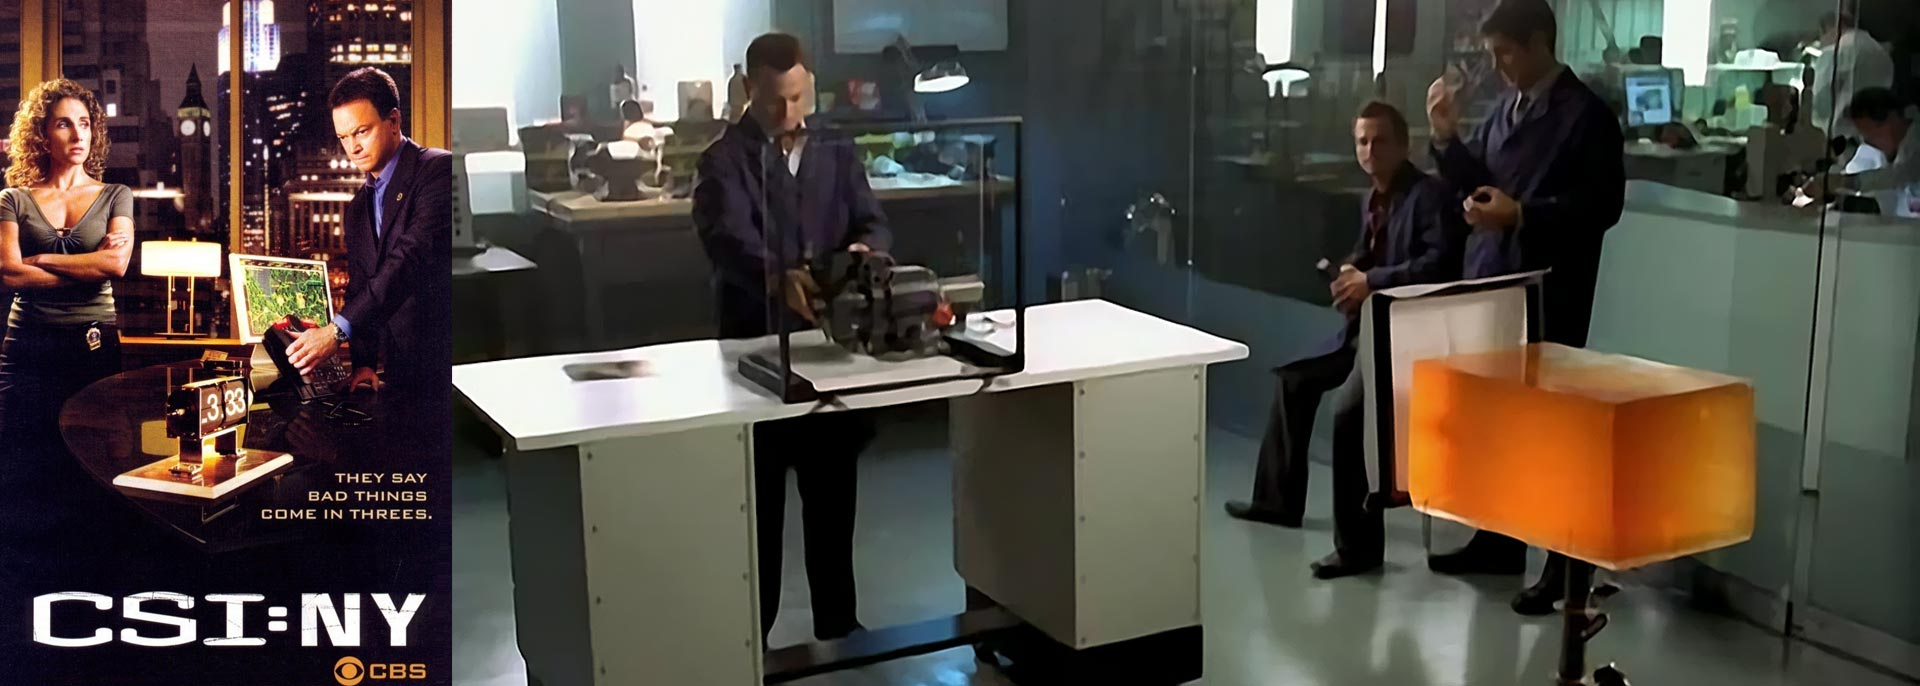 Teclab on CSI:NY